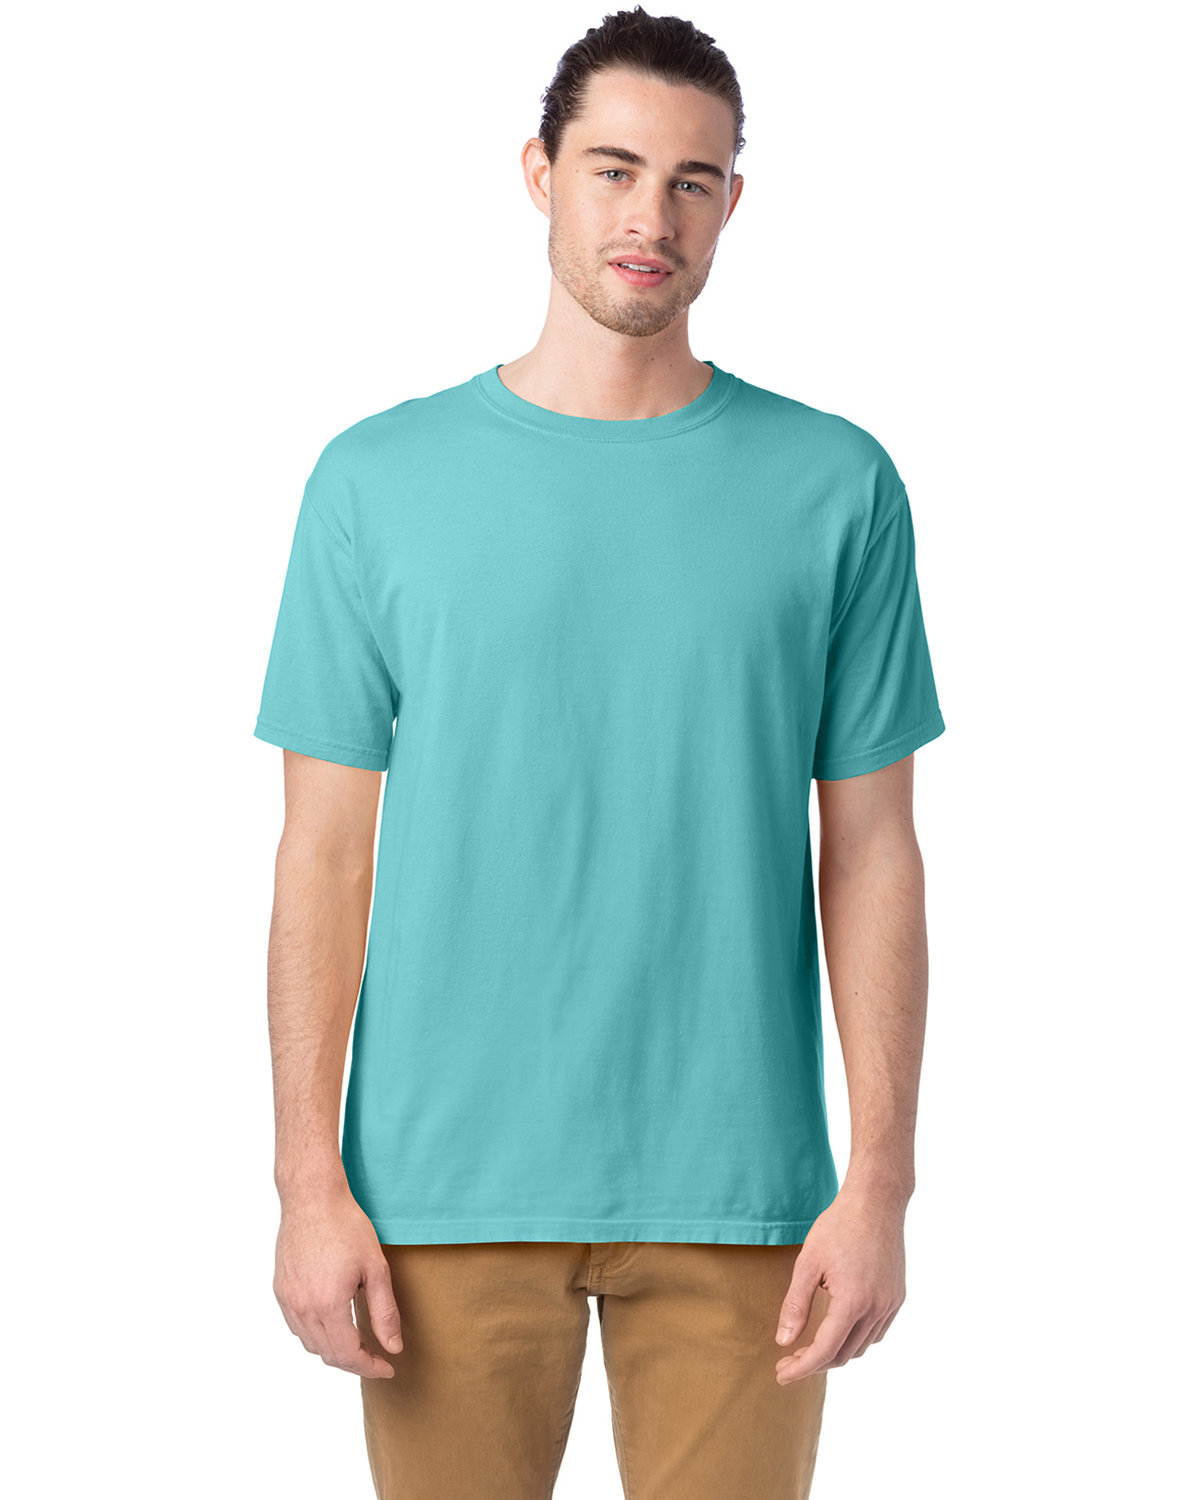 ComfortWash by Hanes Men's 5.5 oz., 100% Ringspun Cotton Garment-Dyed T-Shirt MINT